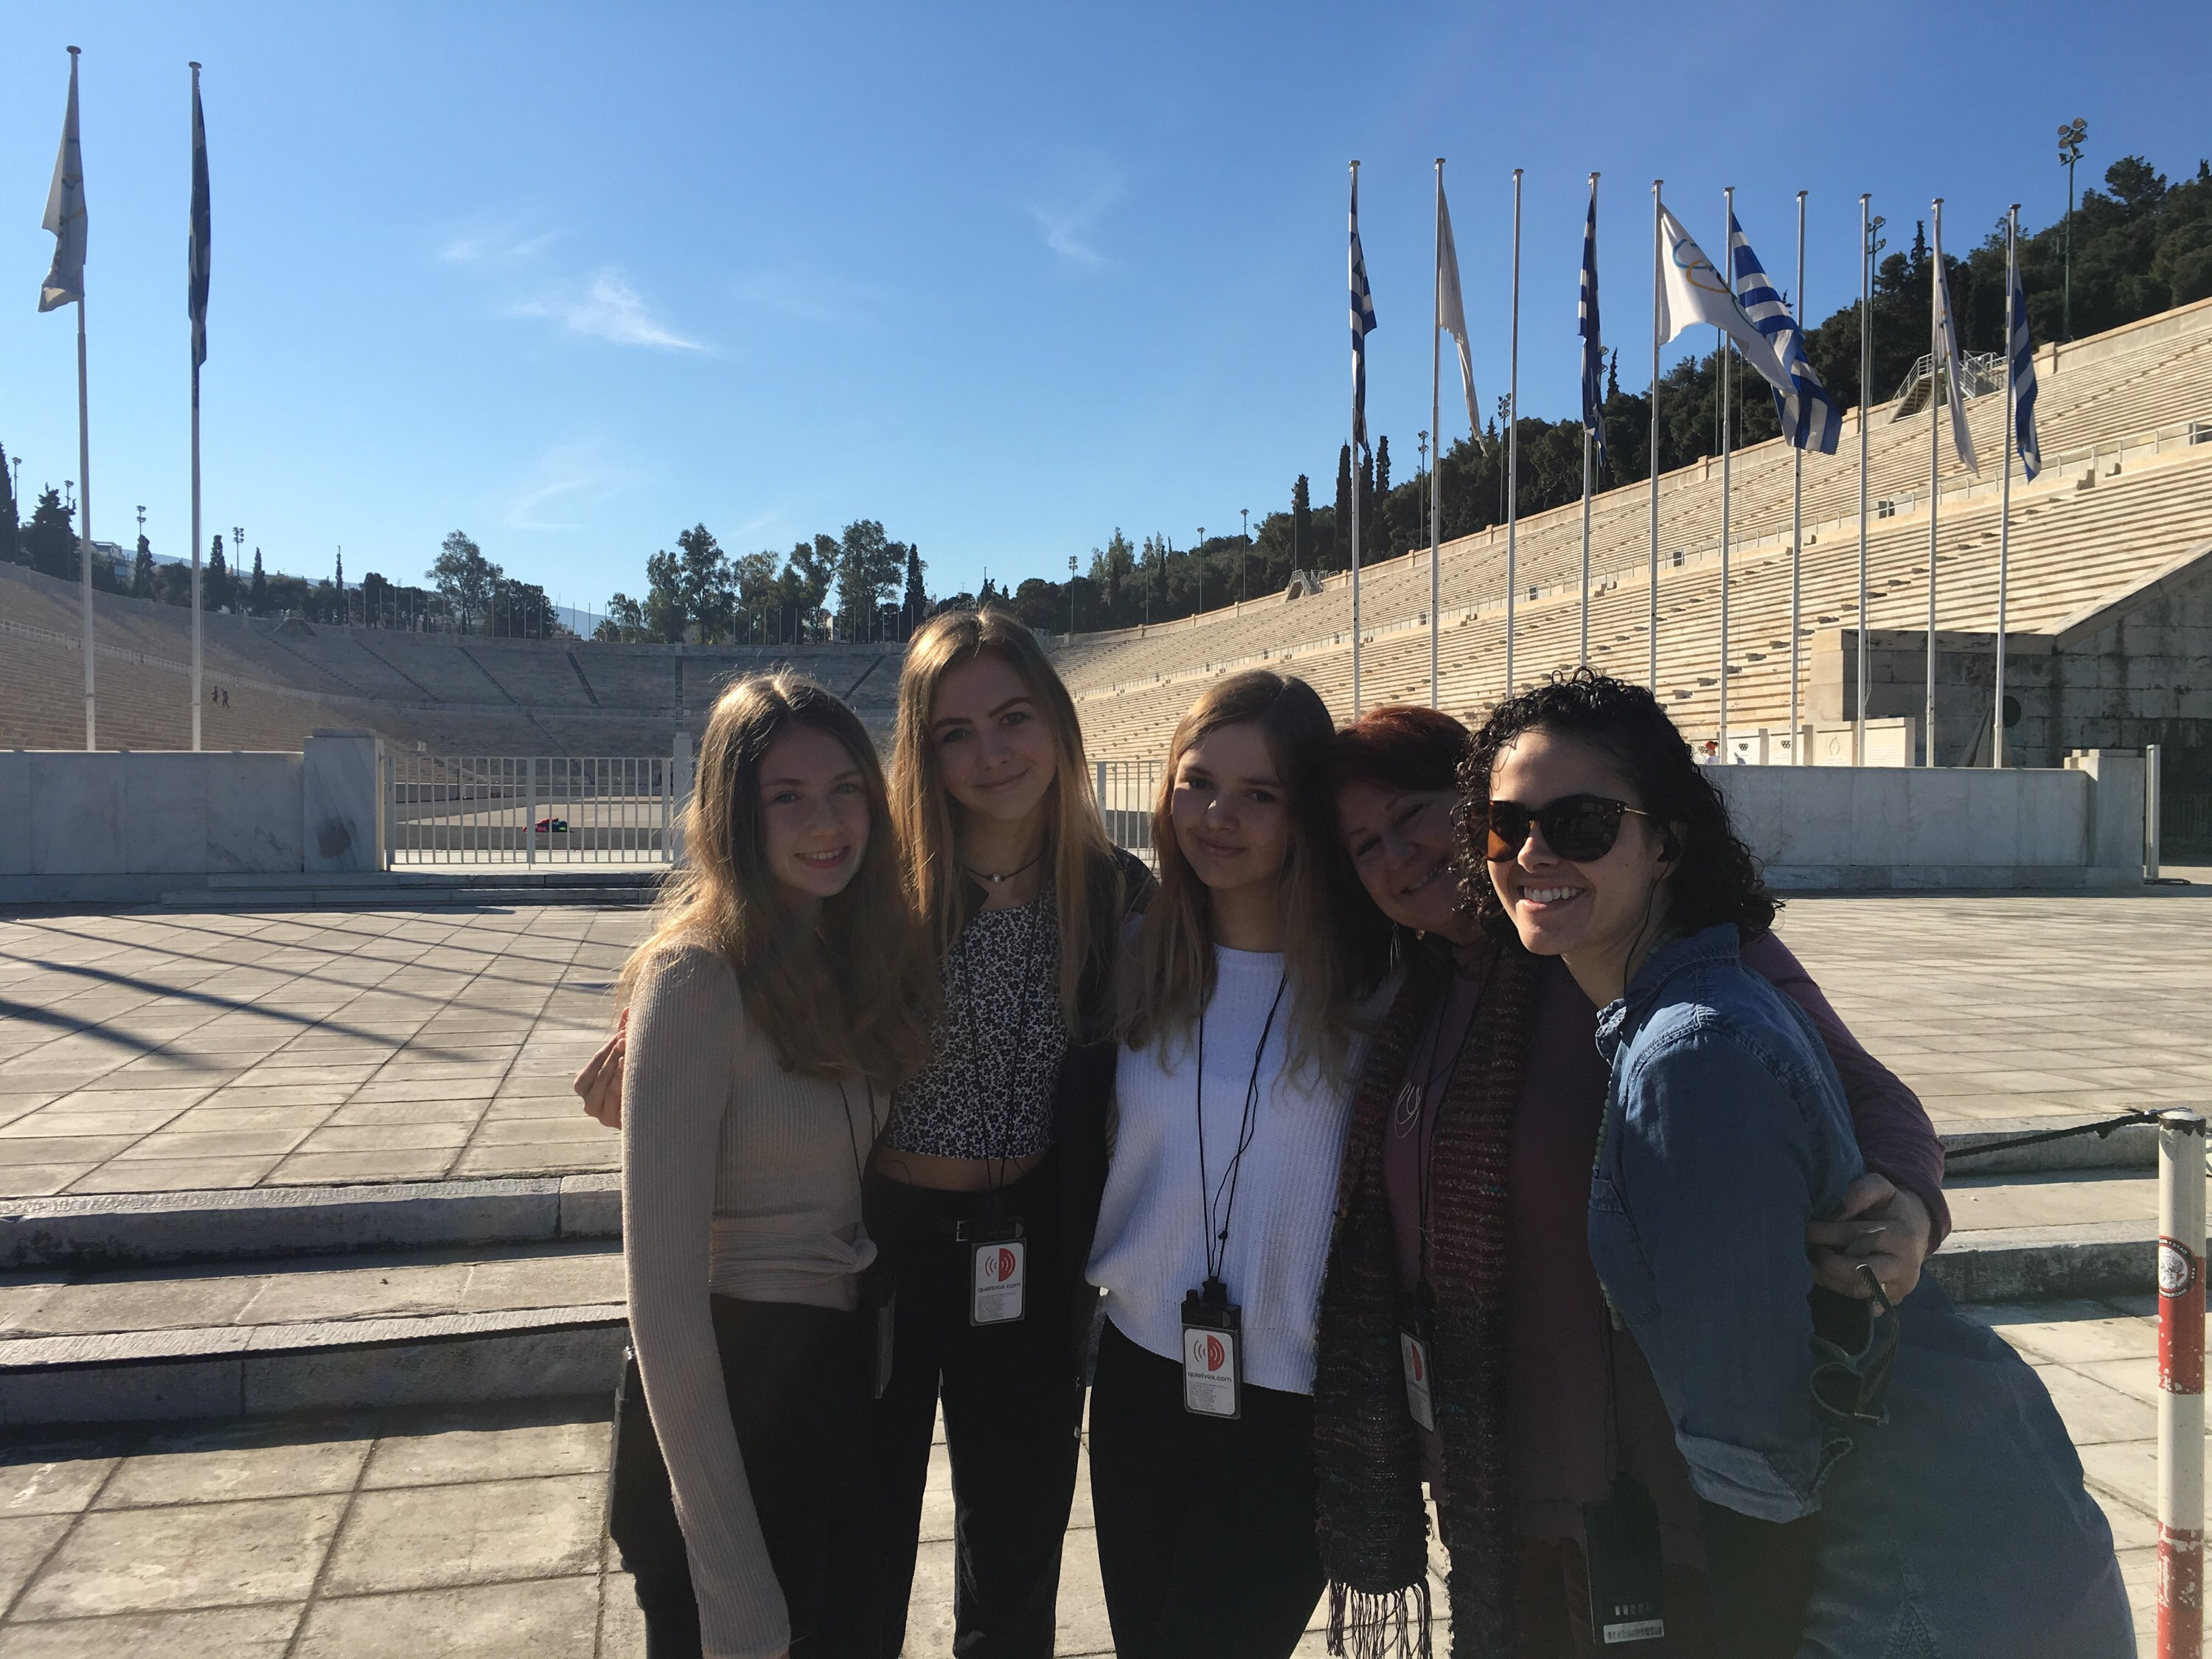 Olympic stadium with girls